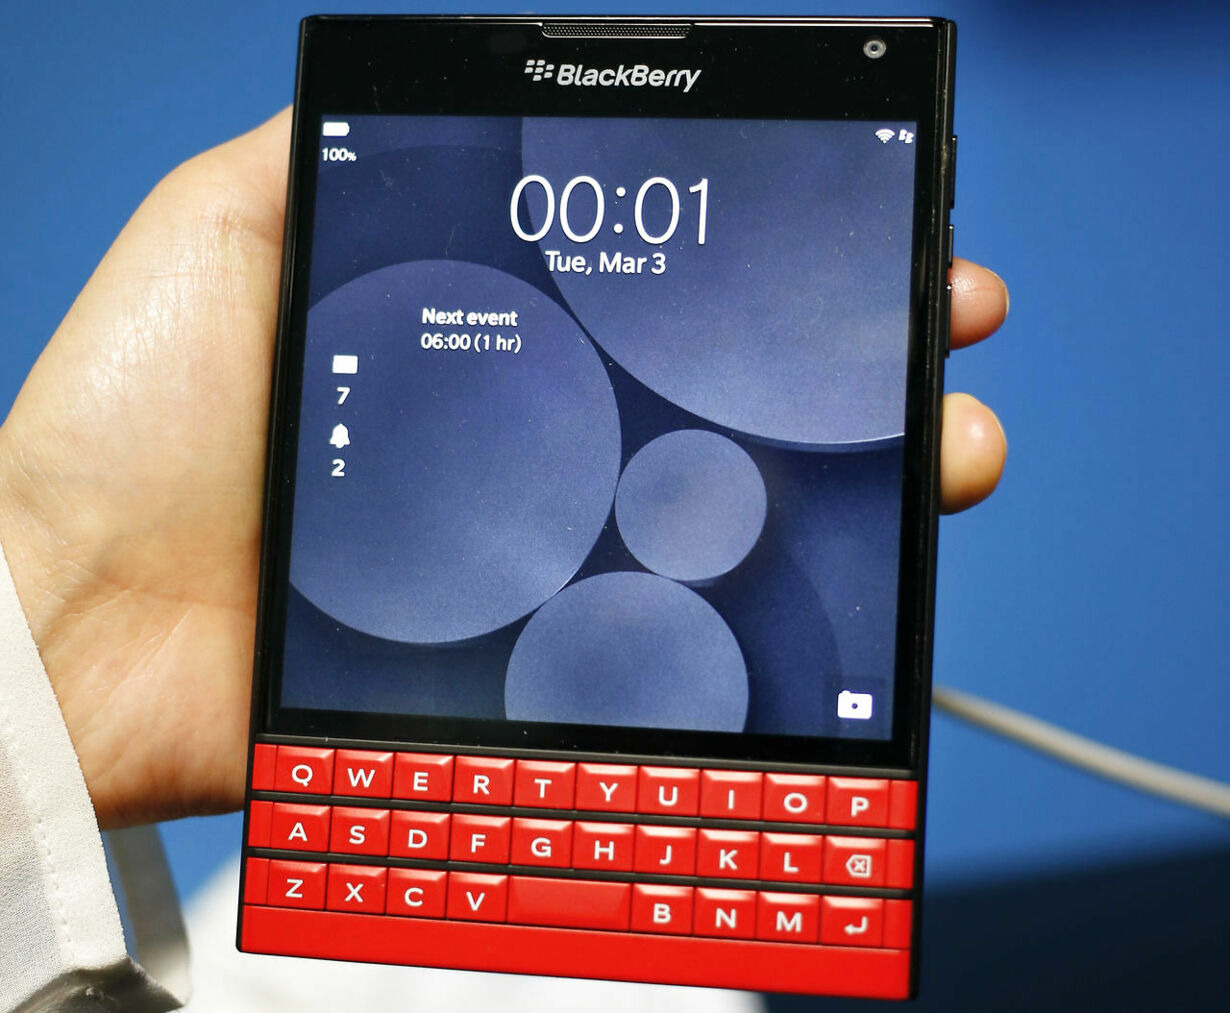 6-TELECOMS-MWC/BLACKBERRY